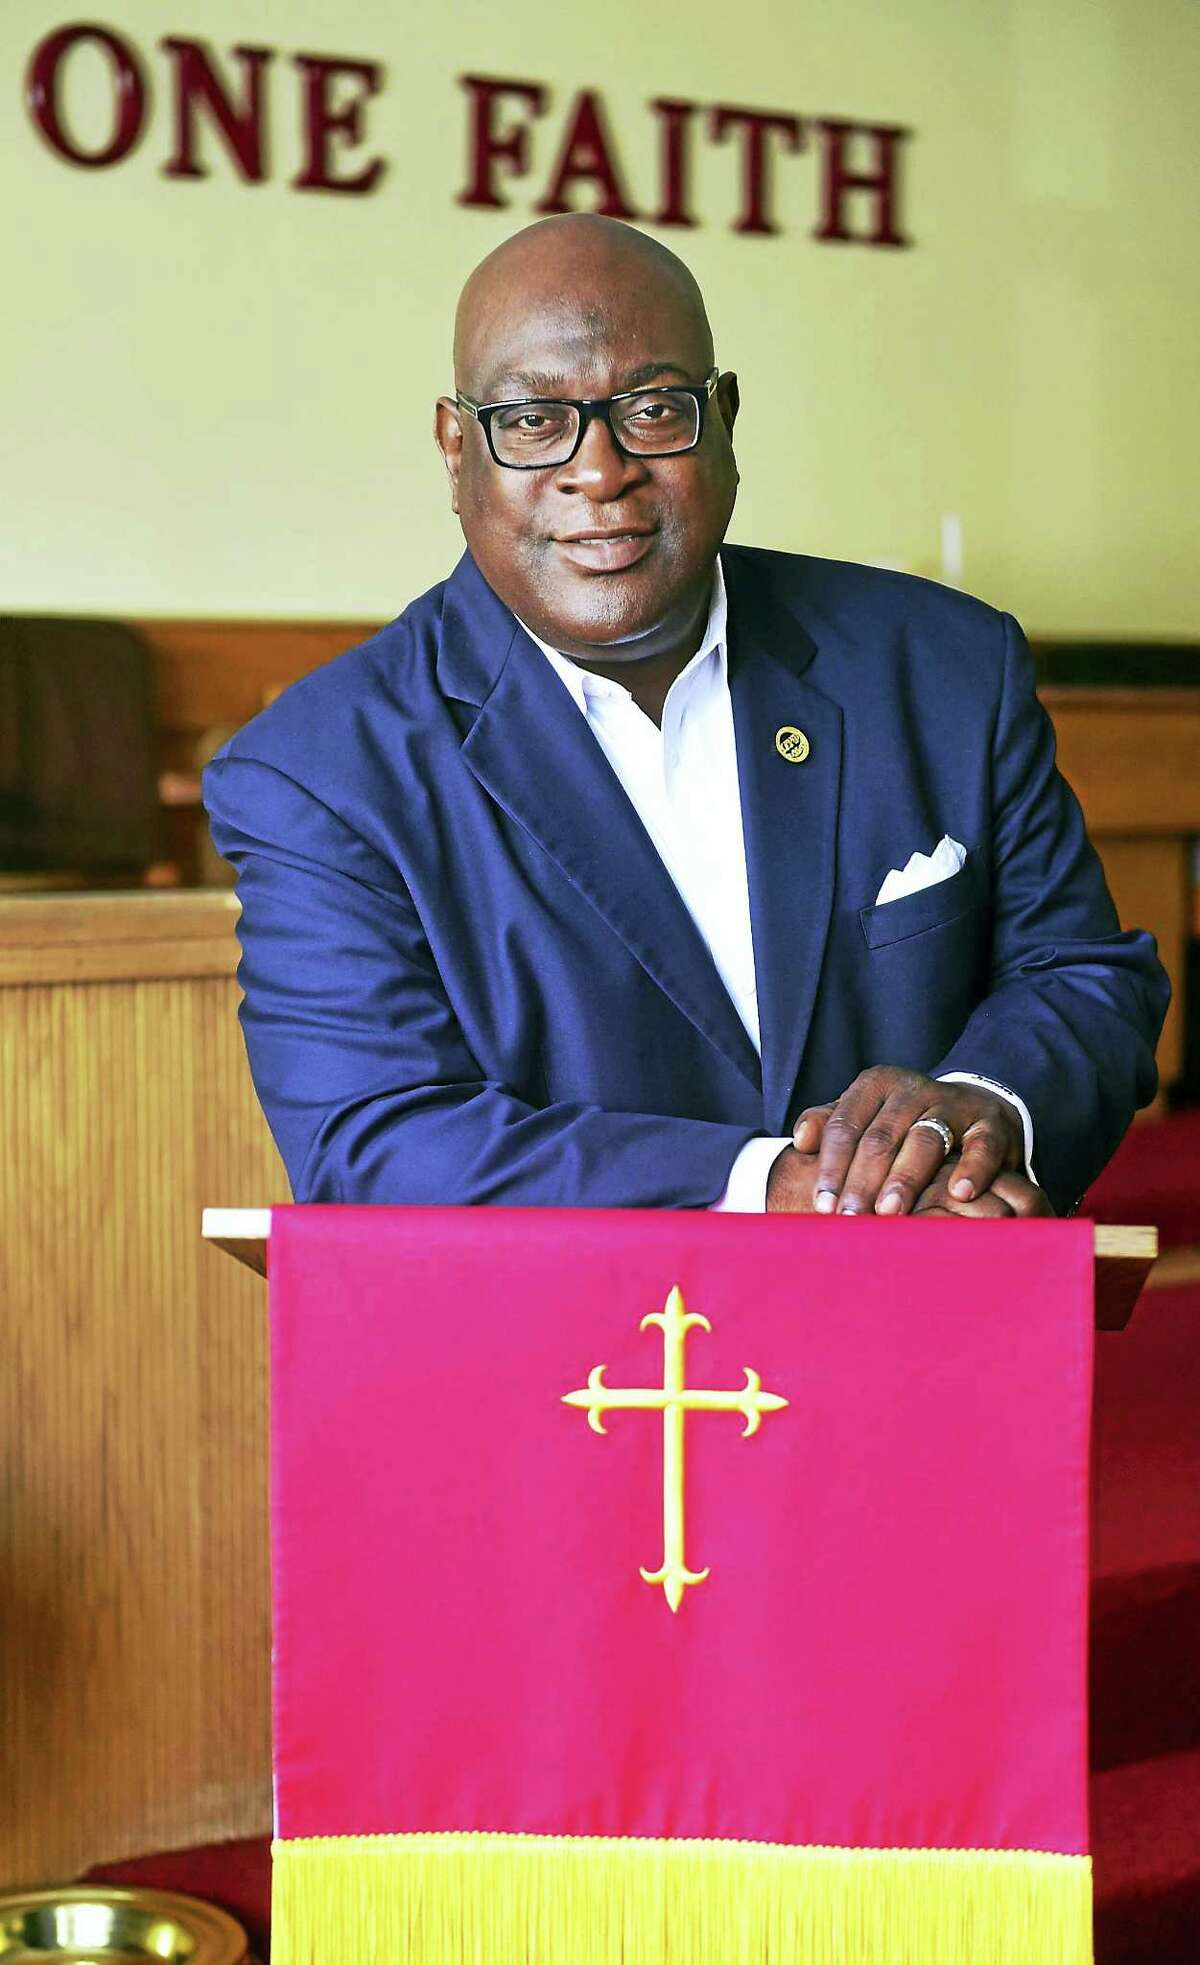 The Rev. Boise Kimber at the First Calvary Baptist Church in New Haven.